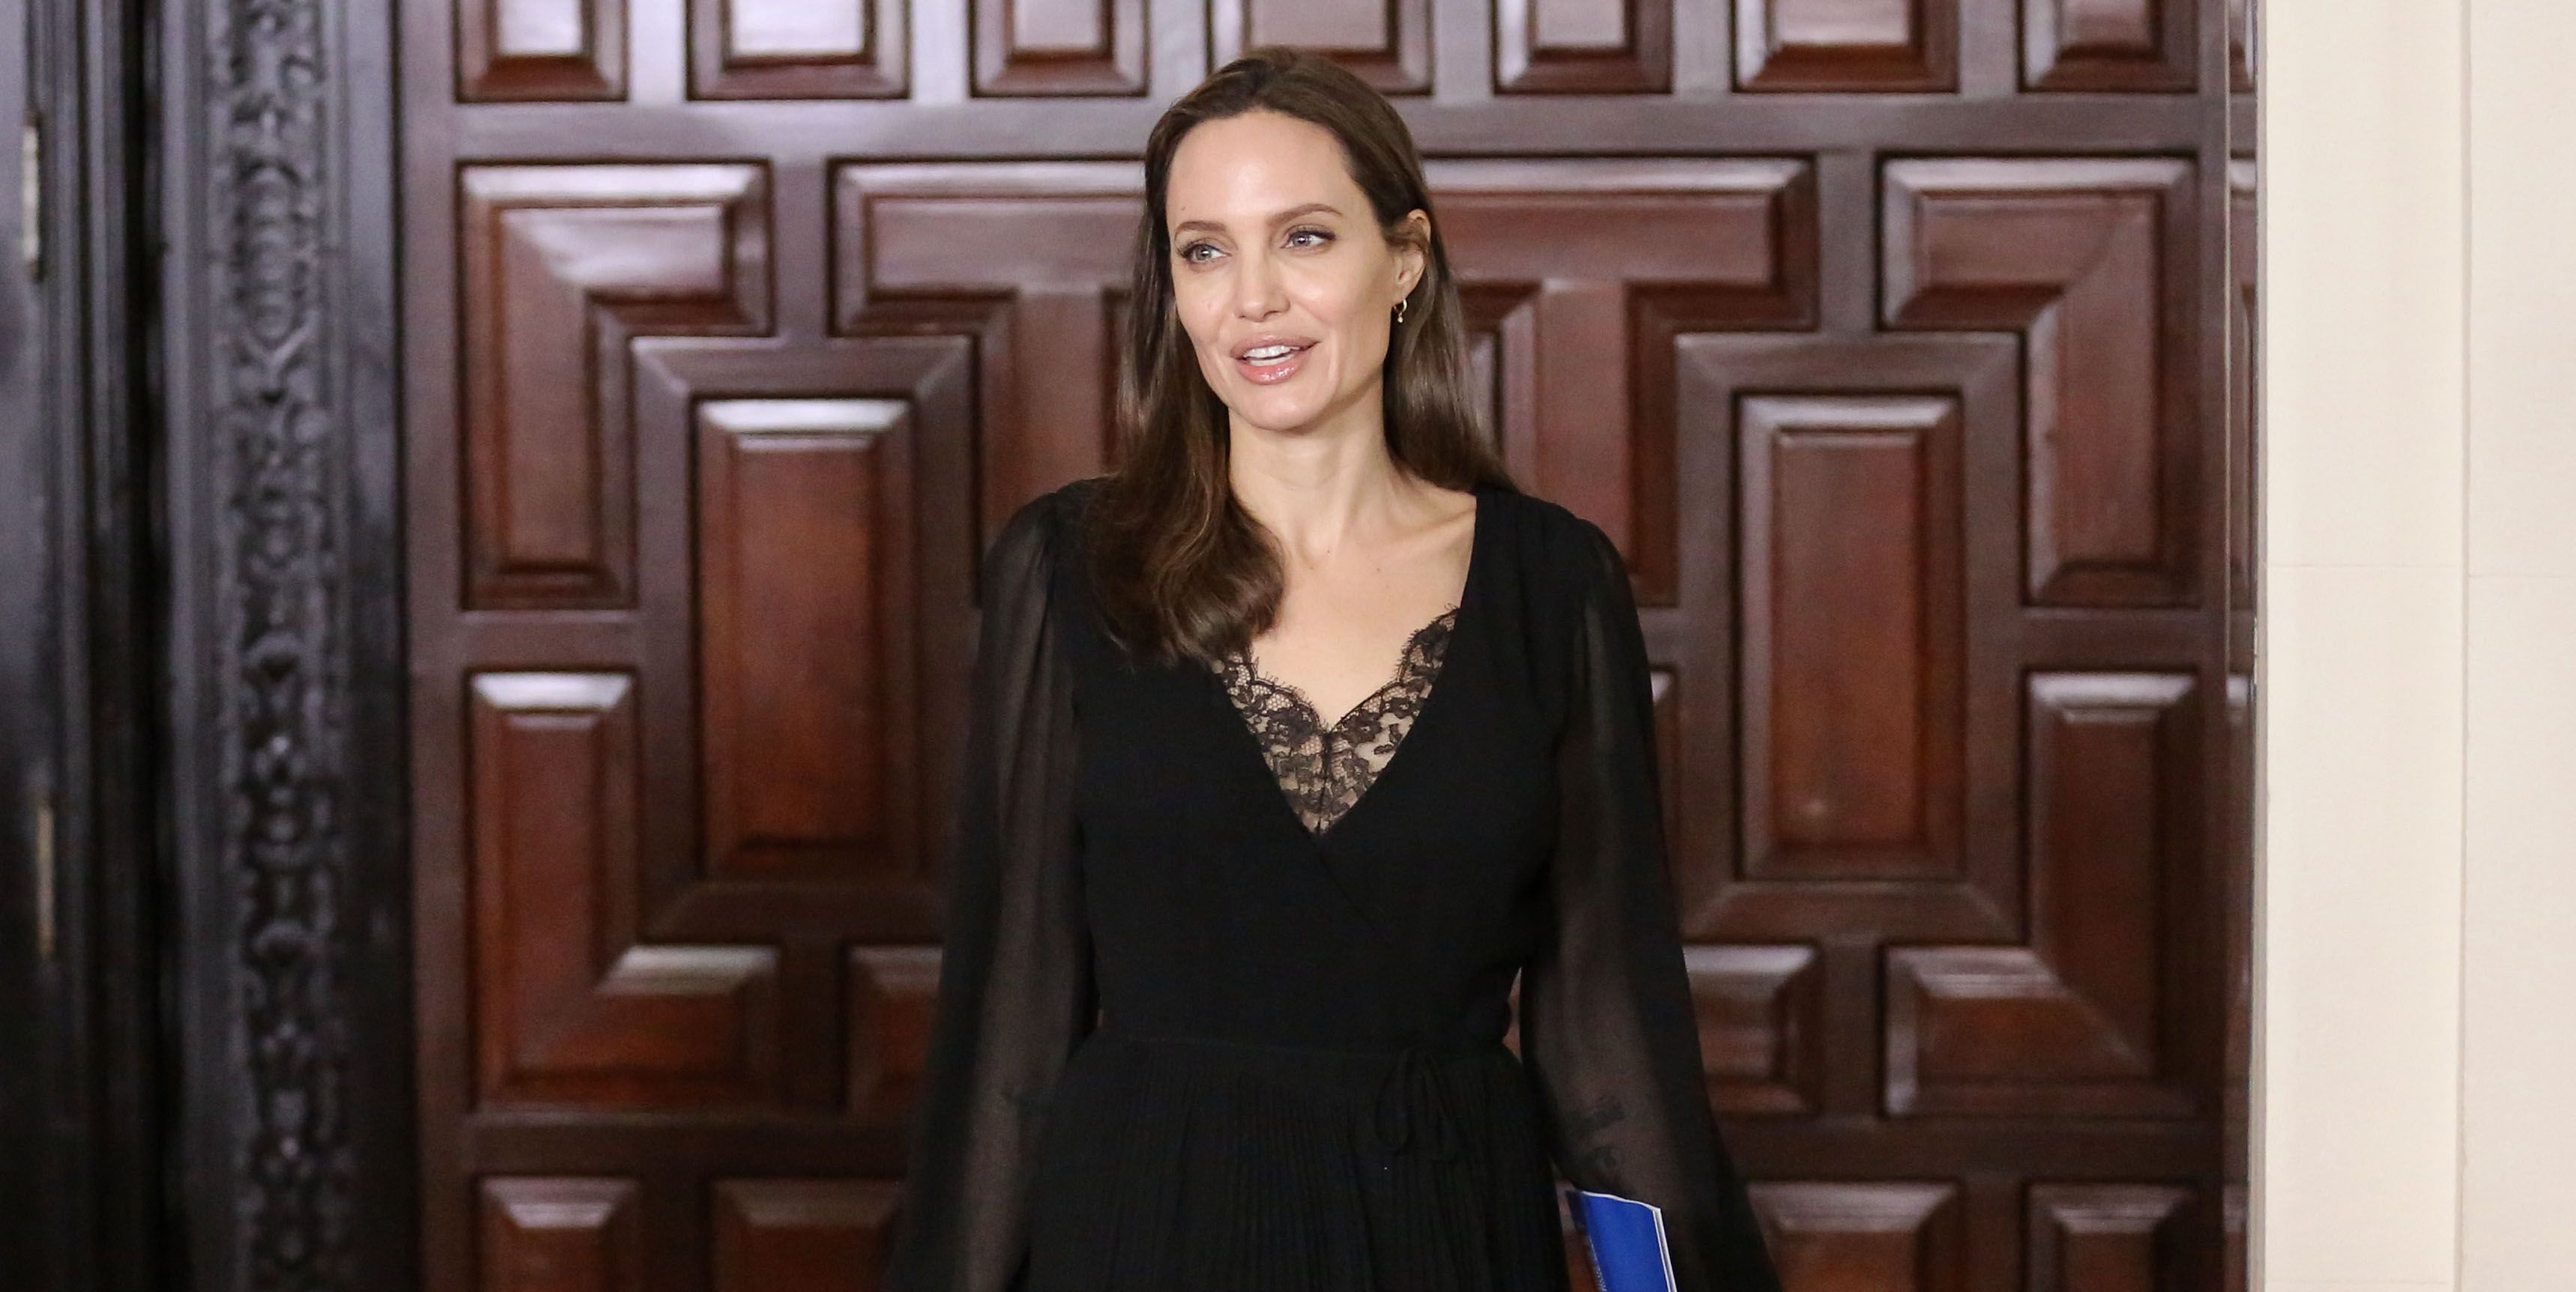 Angelina Jolie Stuns in a Black Lace Dress on Humanitarian Visit to Peru